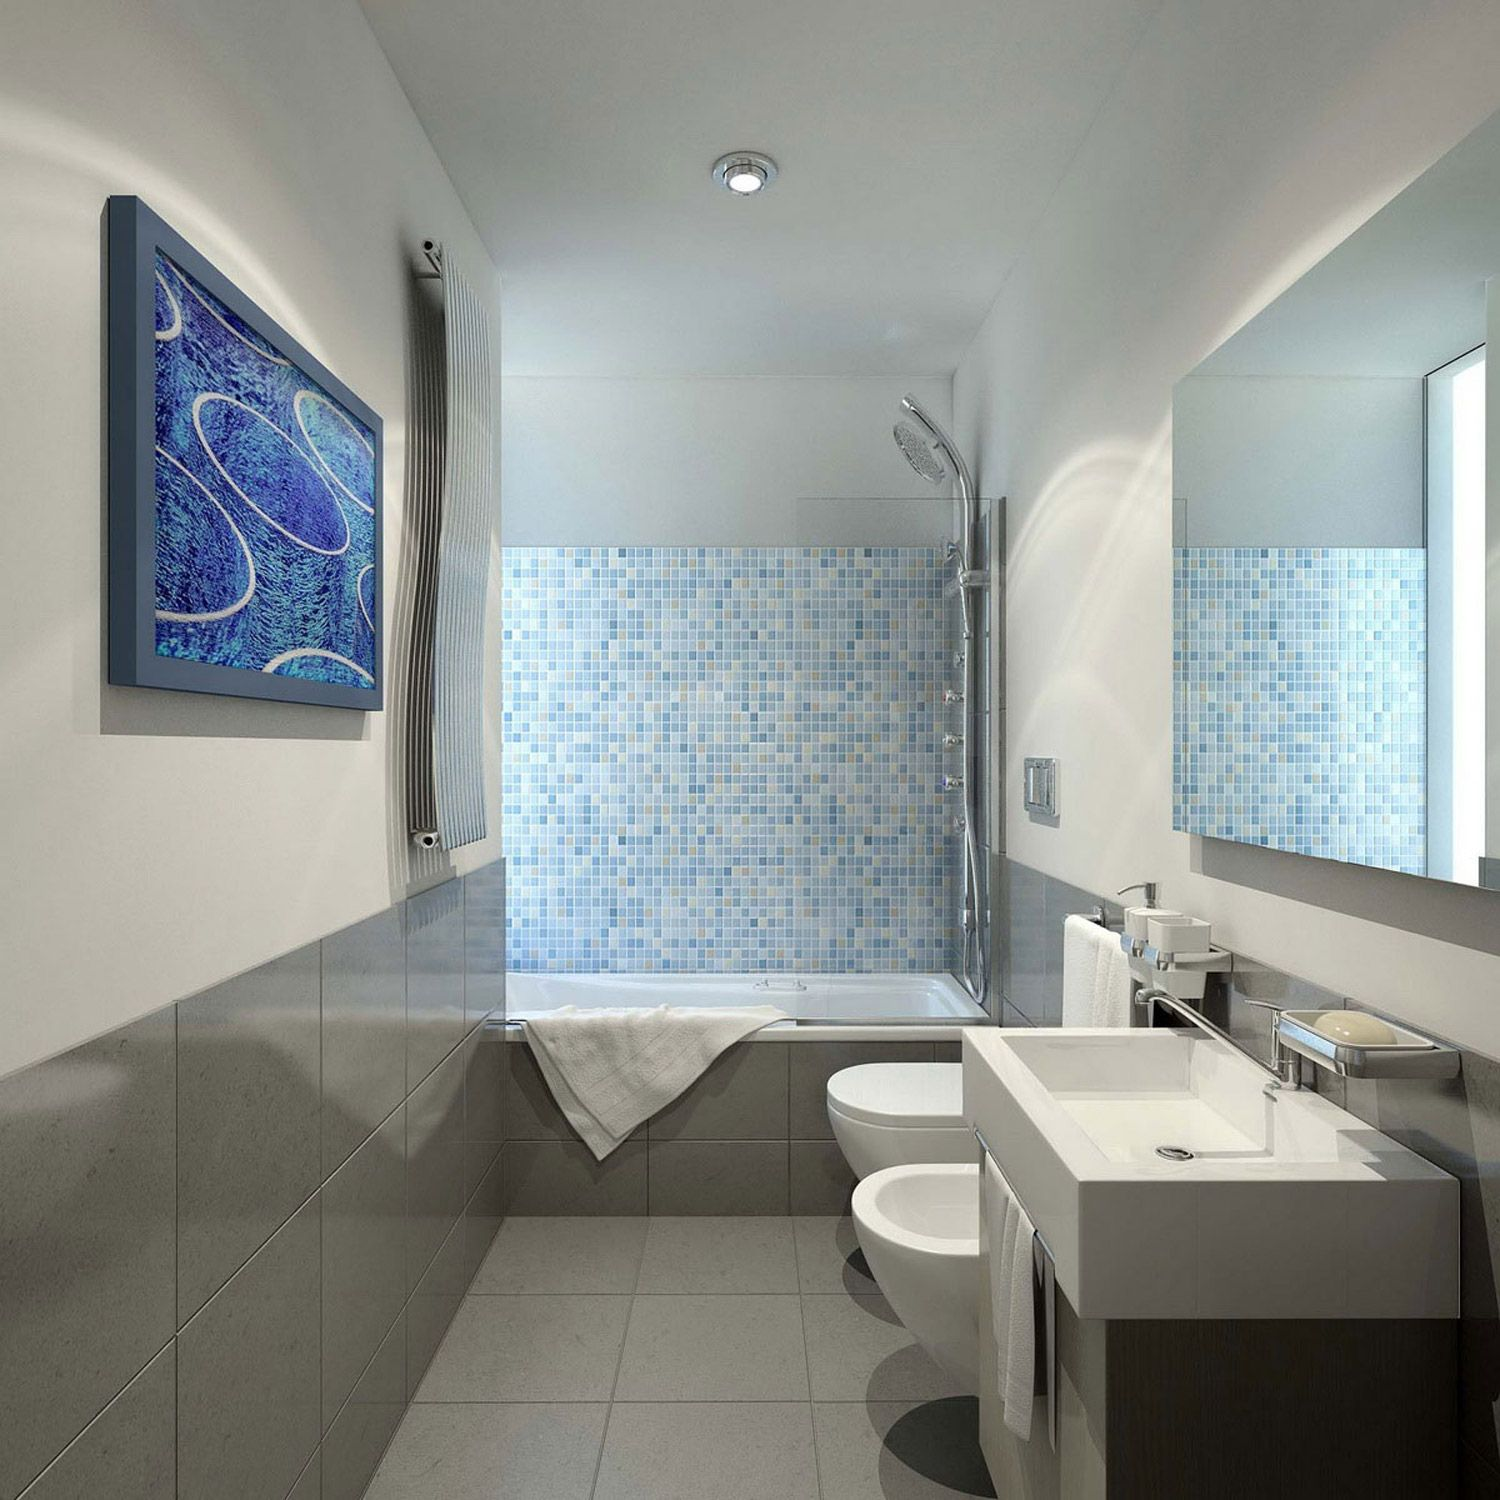 Minimalist And Modern Bathroom Design Ideas For Small Spaces Long